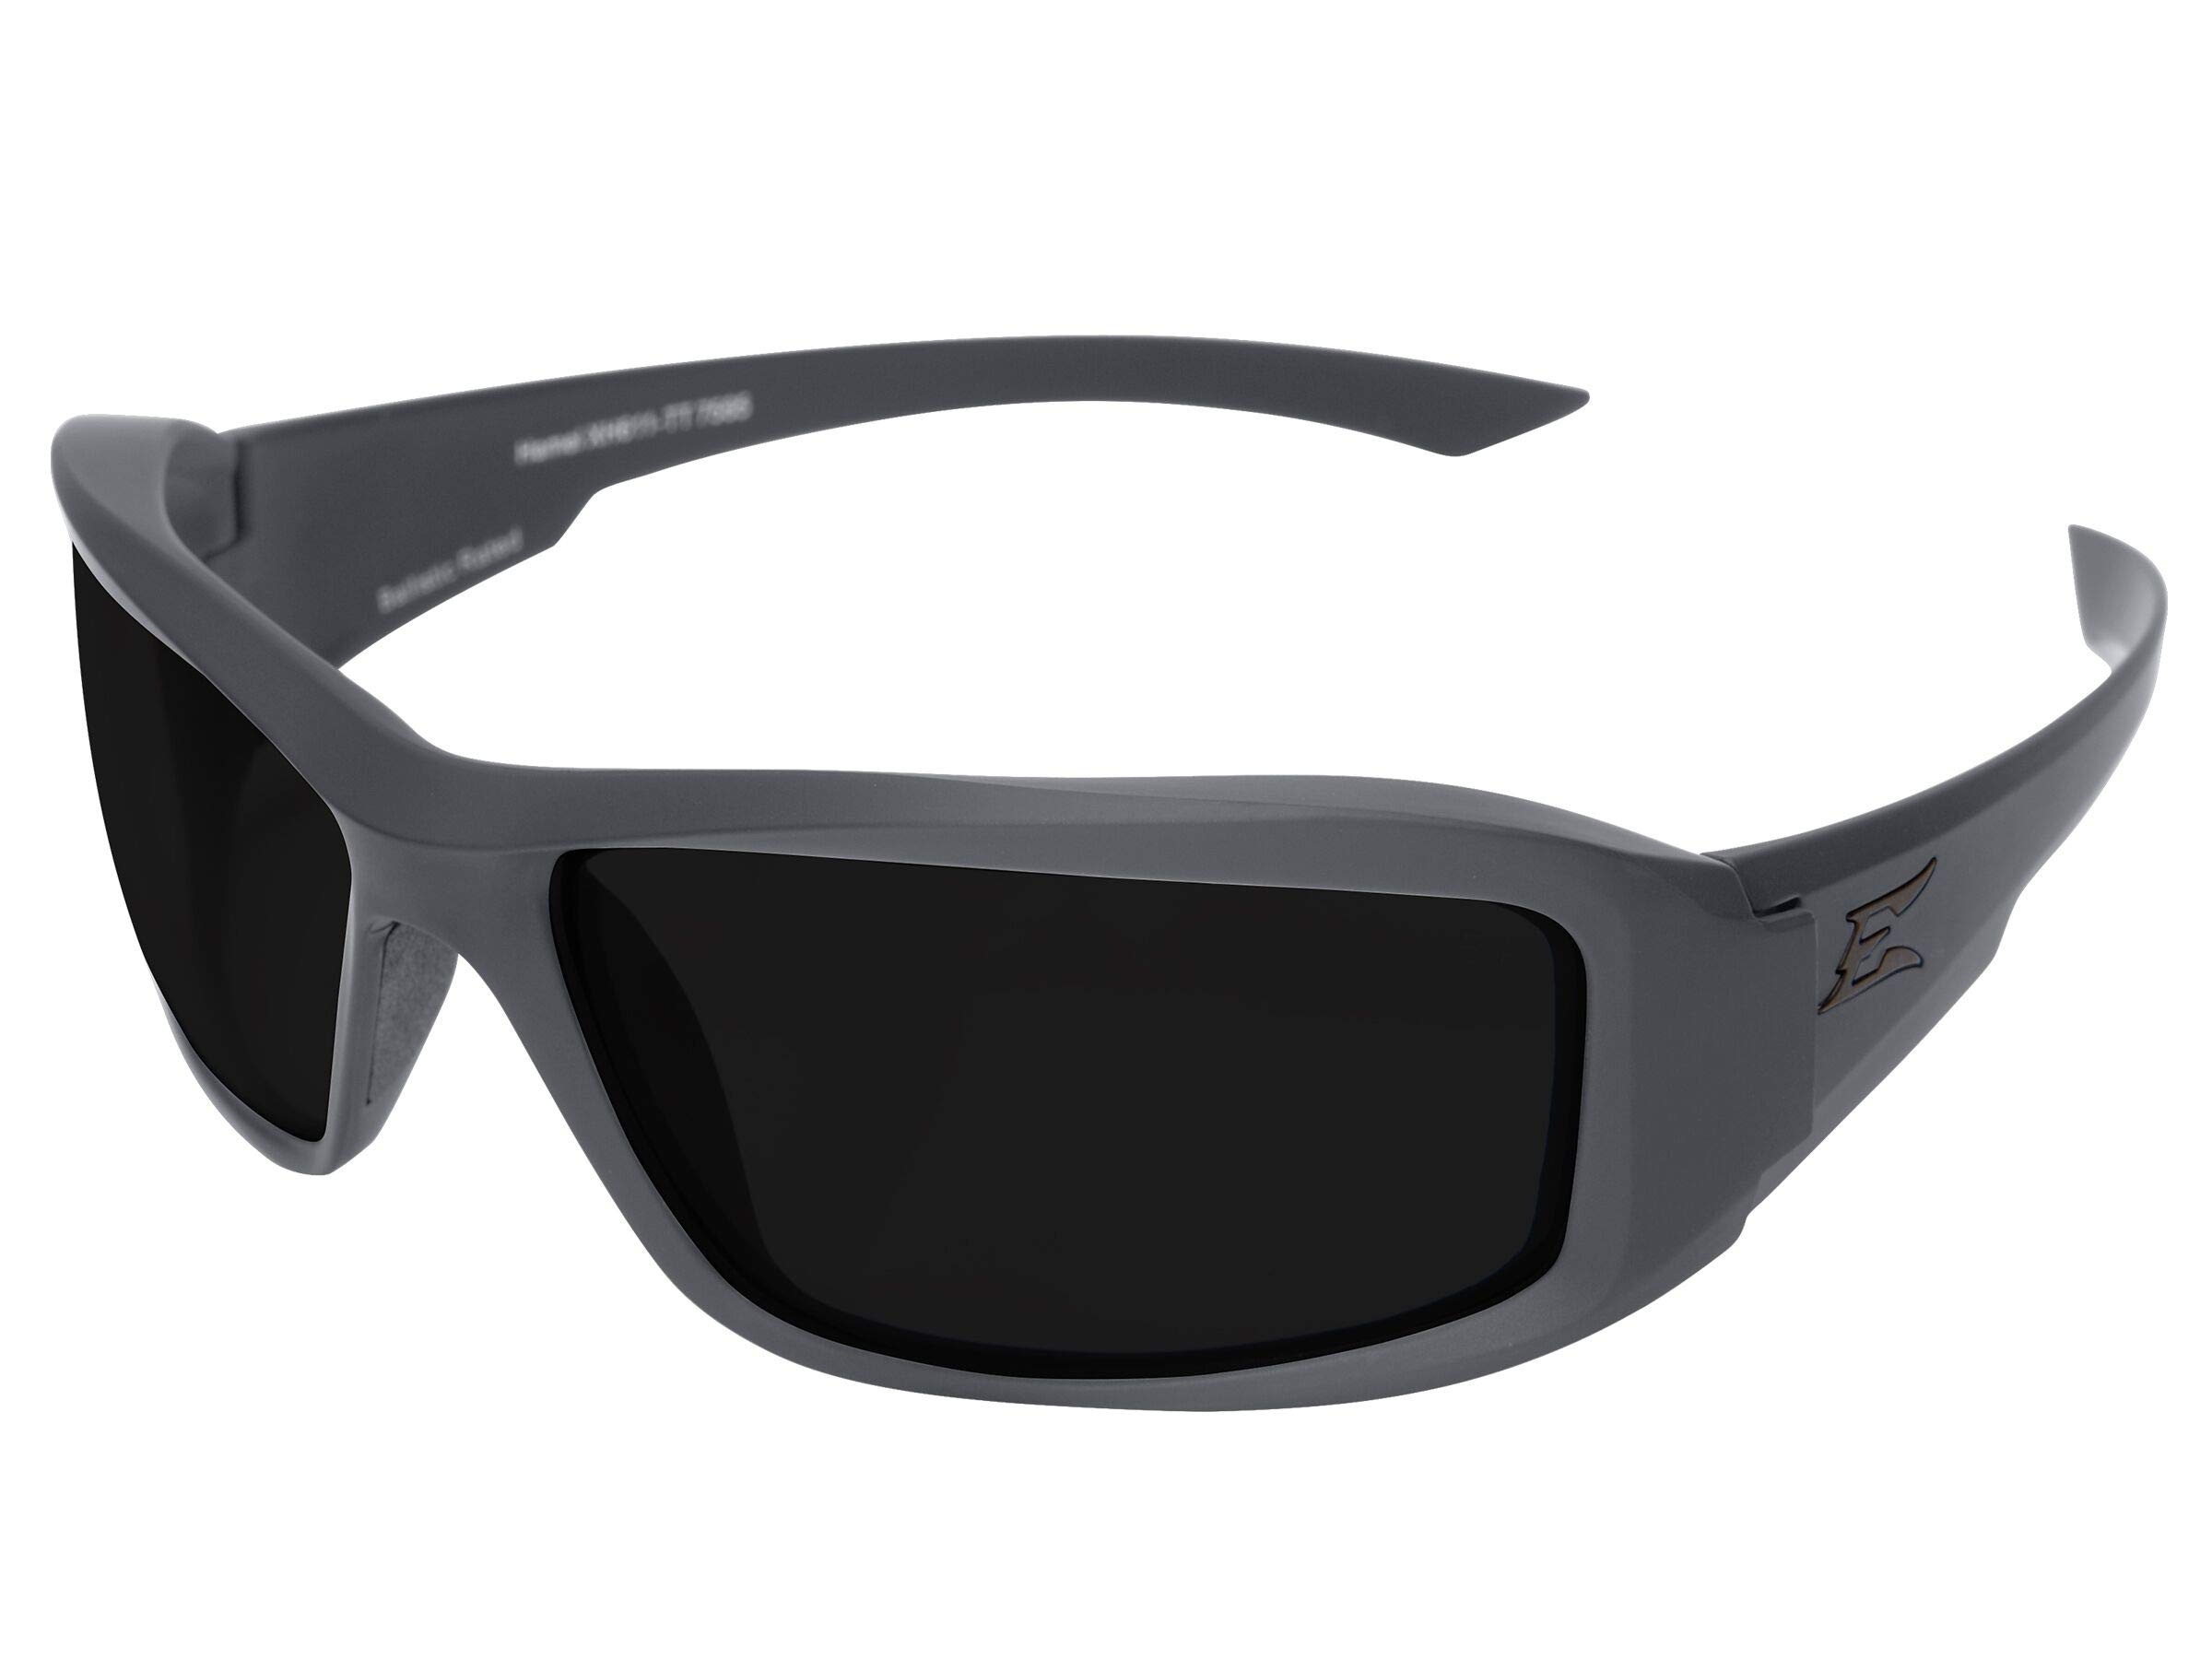 Edge Eyewear TXH726-TT Hamel Gray Wolf Thin Temple - Soft-Touch Gray Frame/Polarized Smoke Lenses